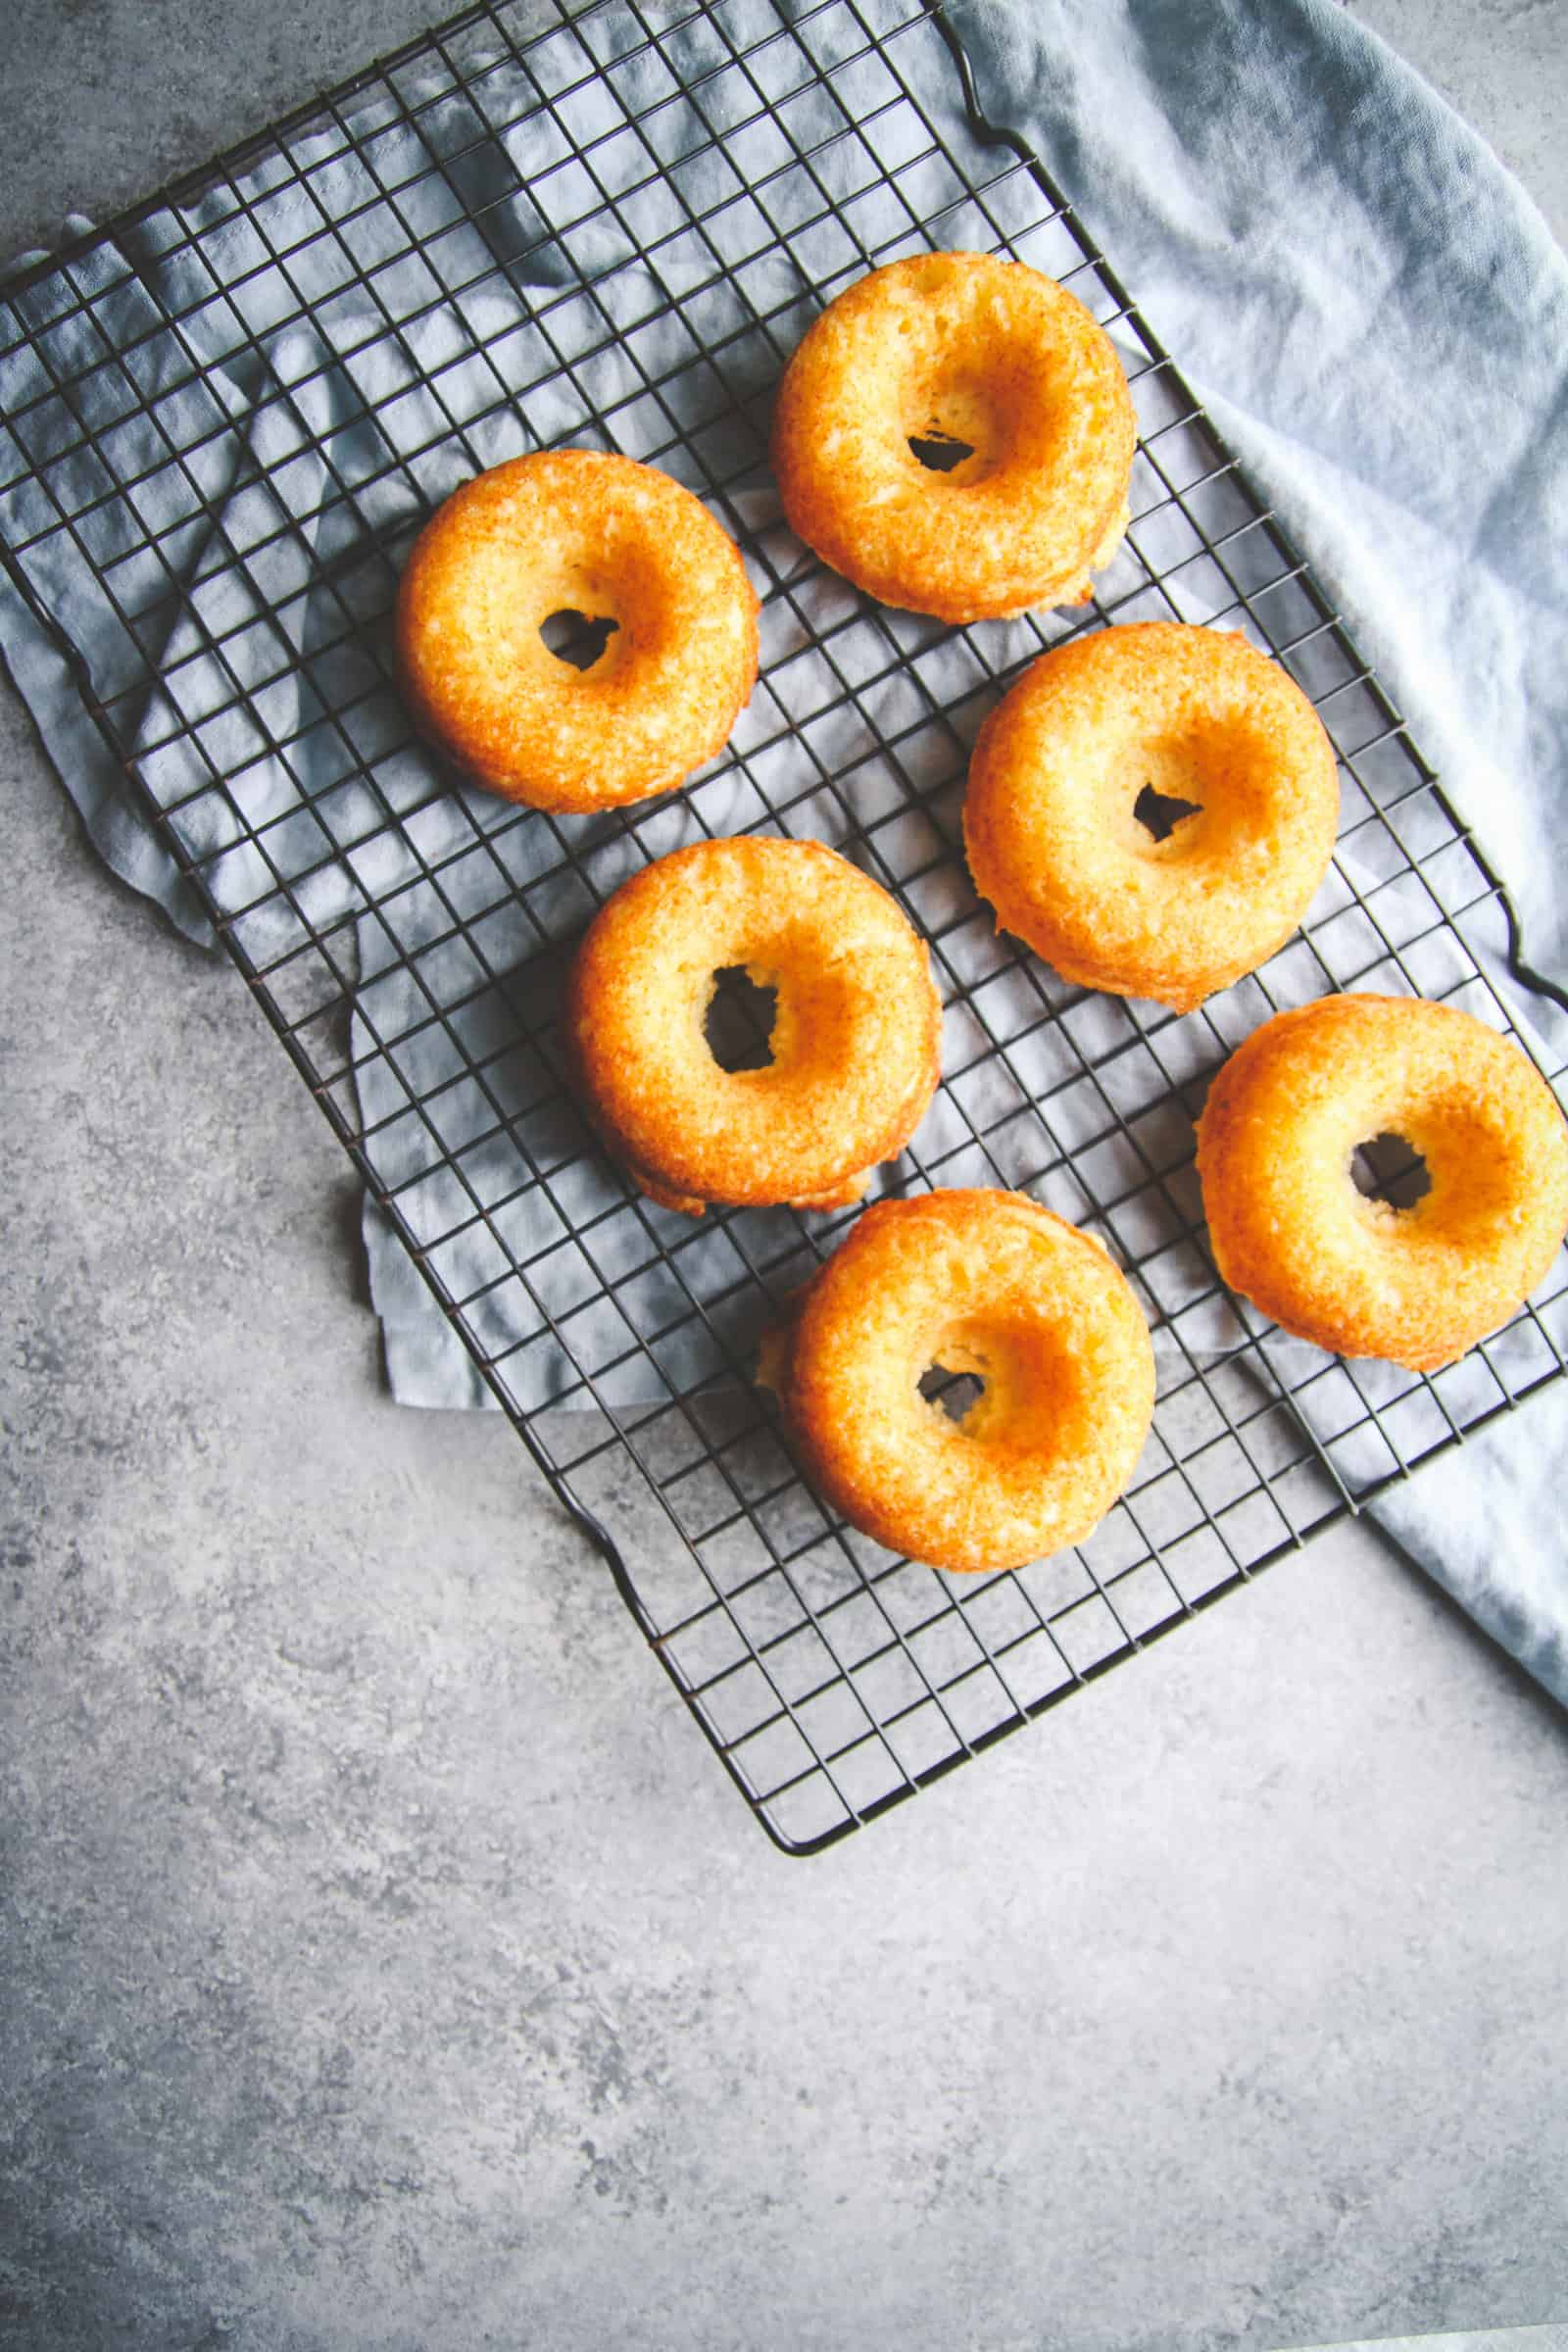 How to make lemon baked donuts